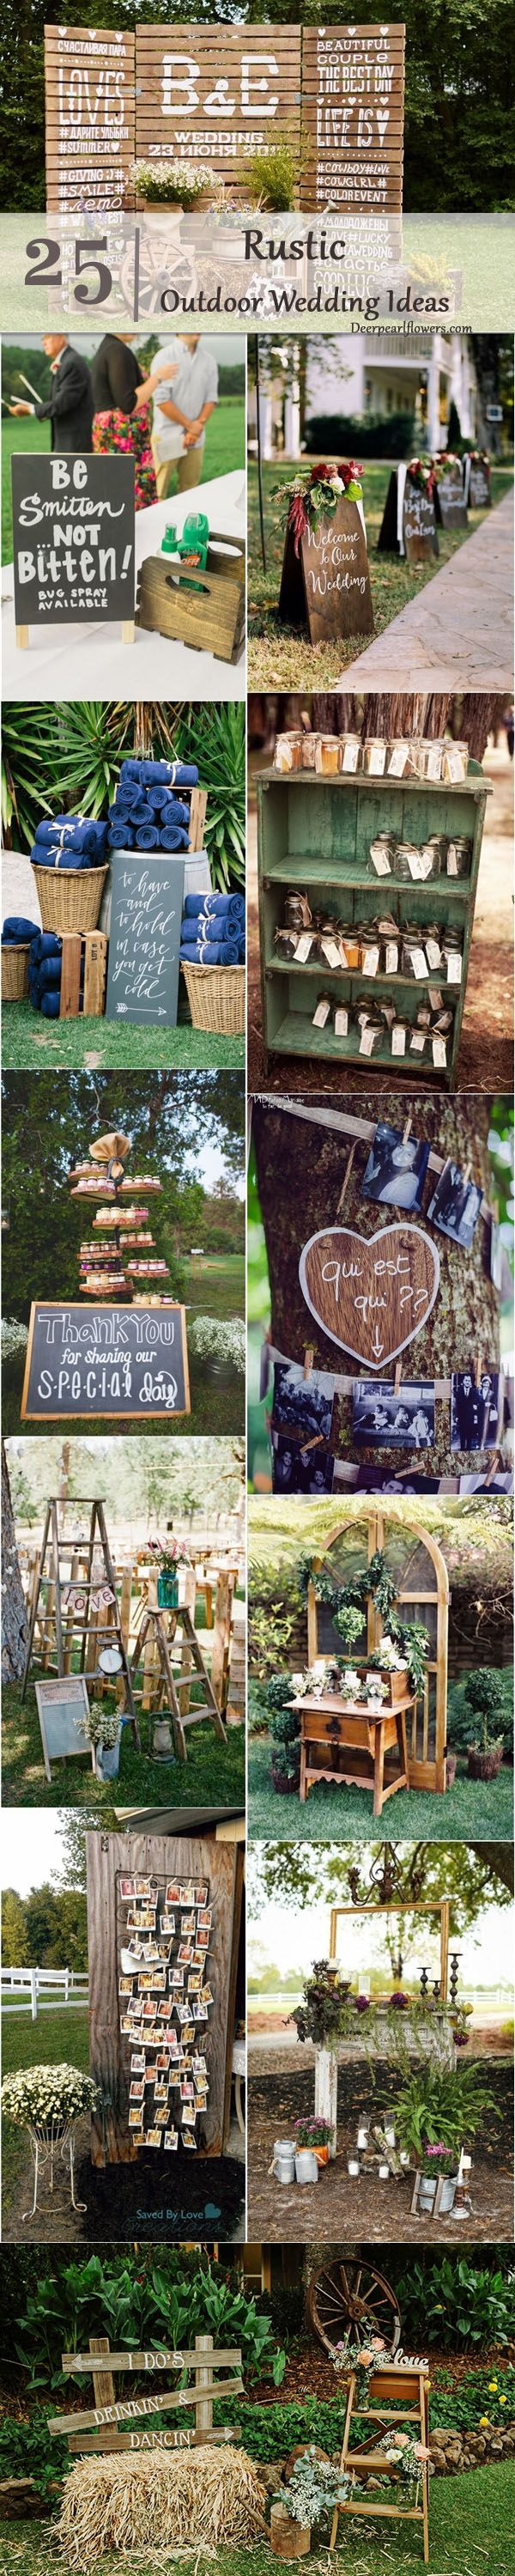 Rustic outdoor wedding decor ideas / http://www.deerpearlflowers.com/rustic-outdoor-wedding-ideas-from-pinterest/